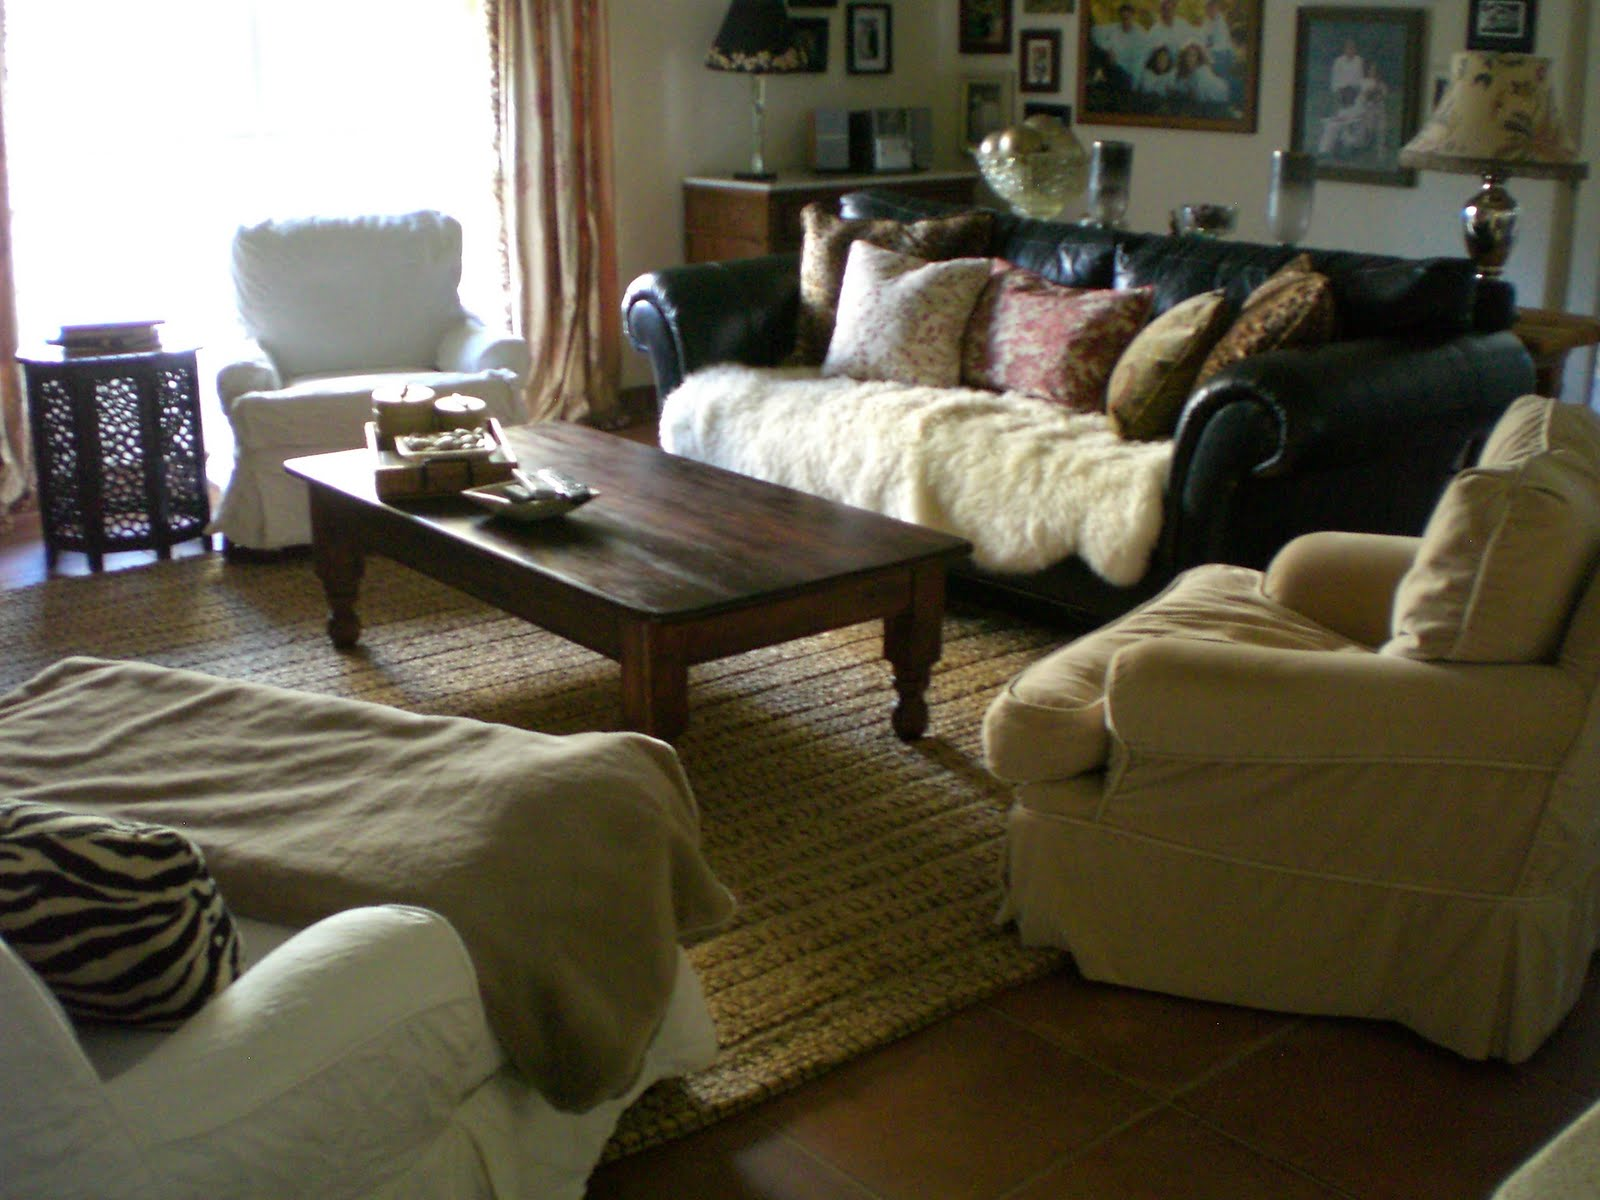 Brown Leather Sofa Pillows With Jute Rug And Black Sofa And Brown Sofa